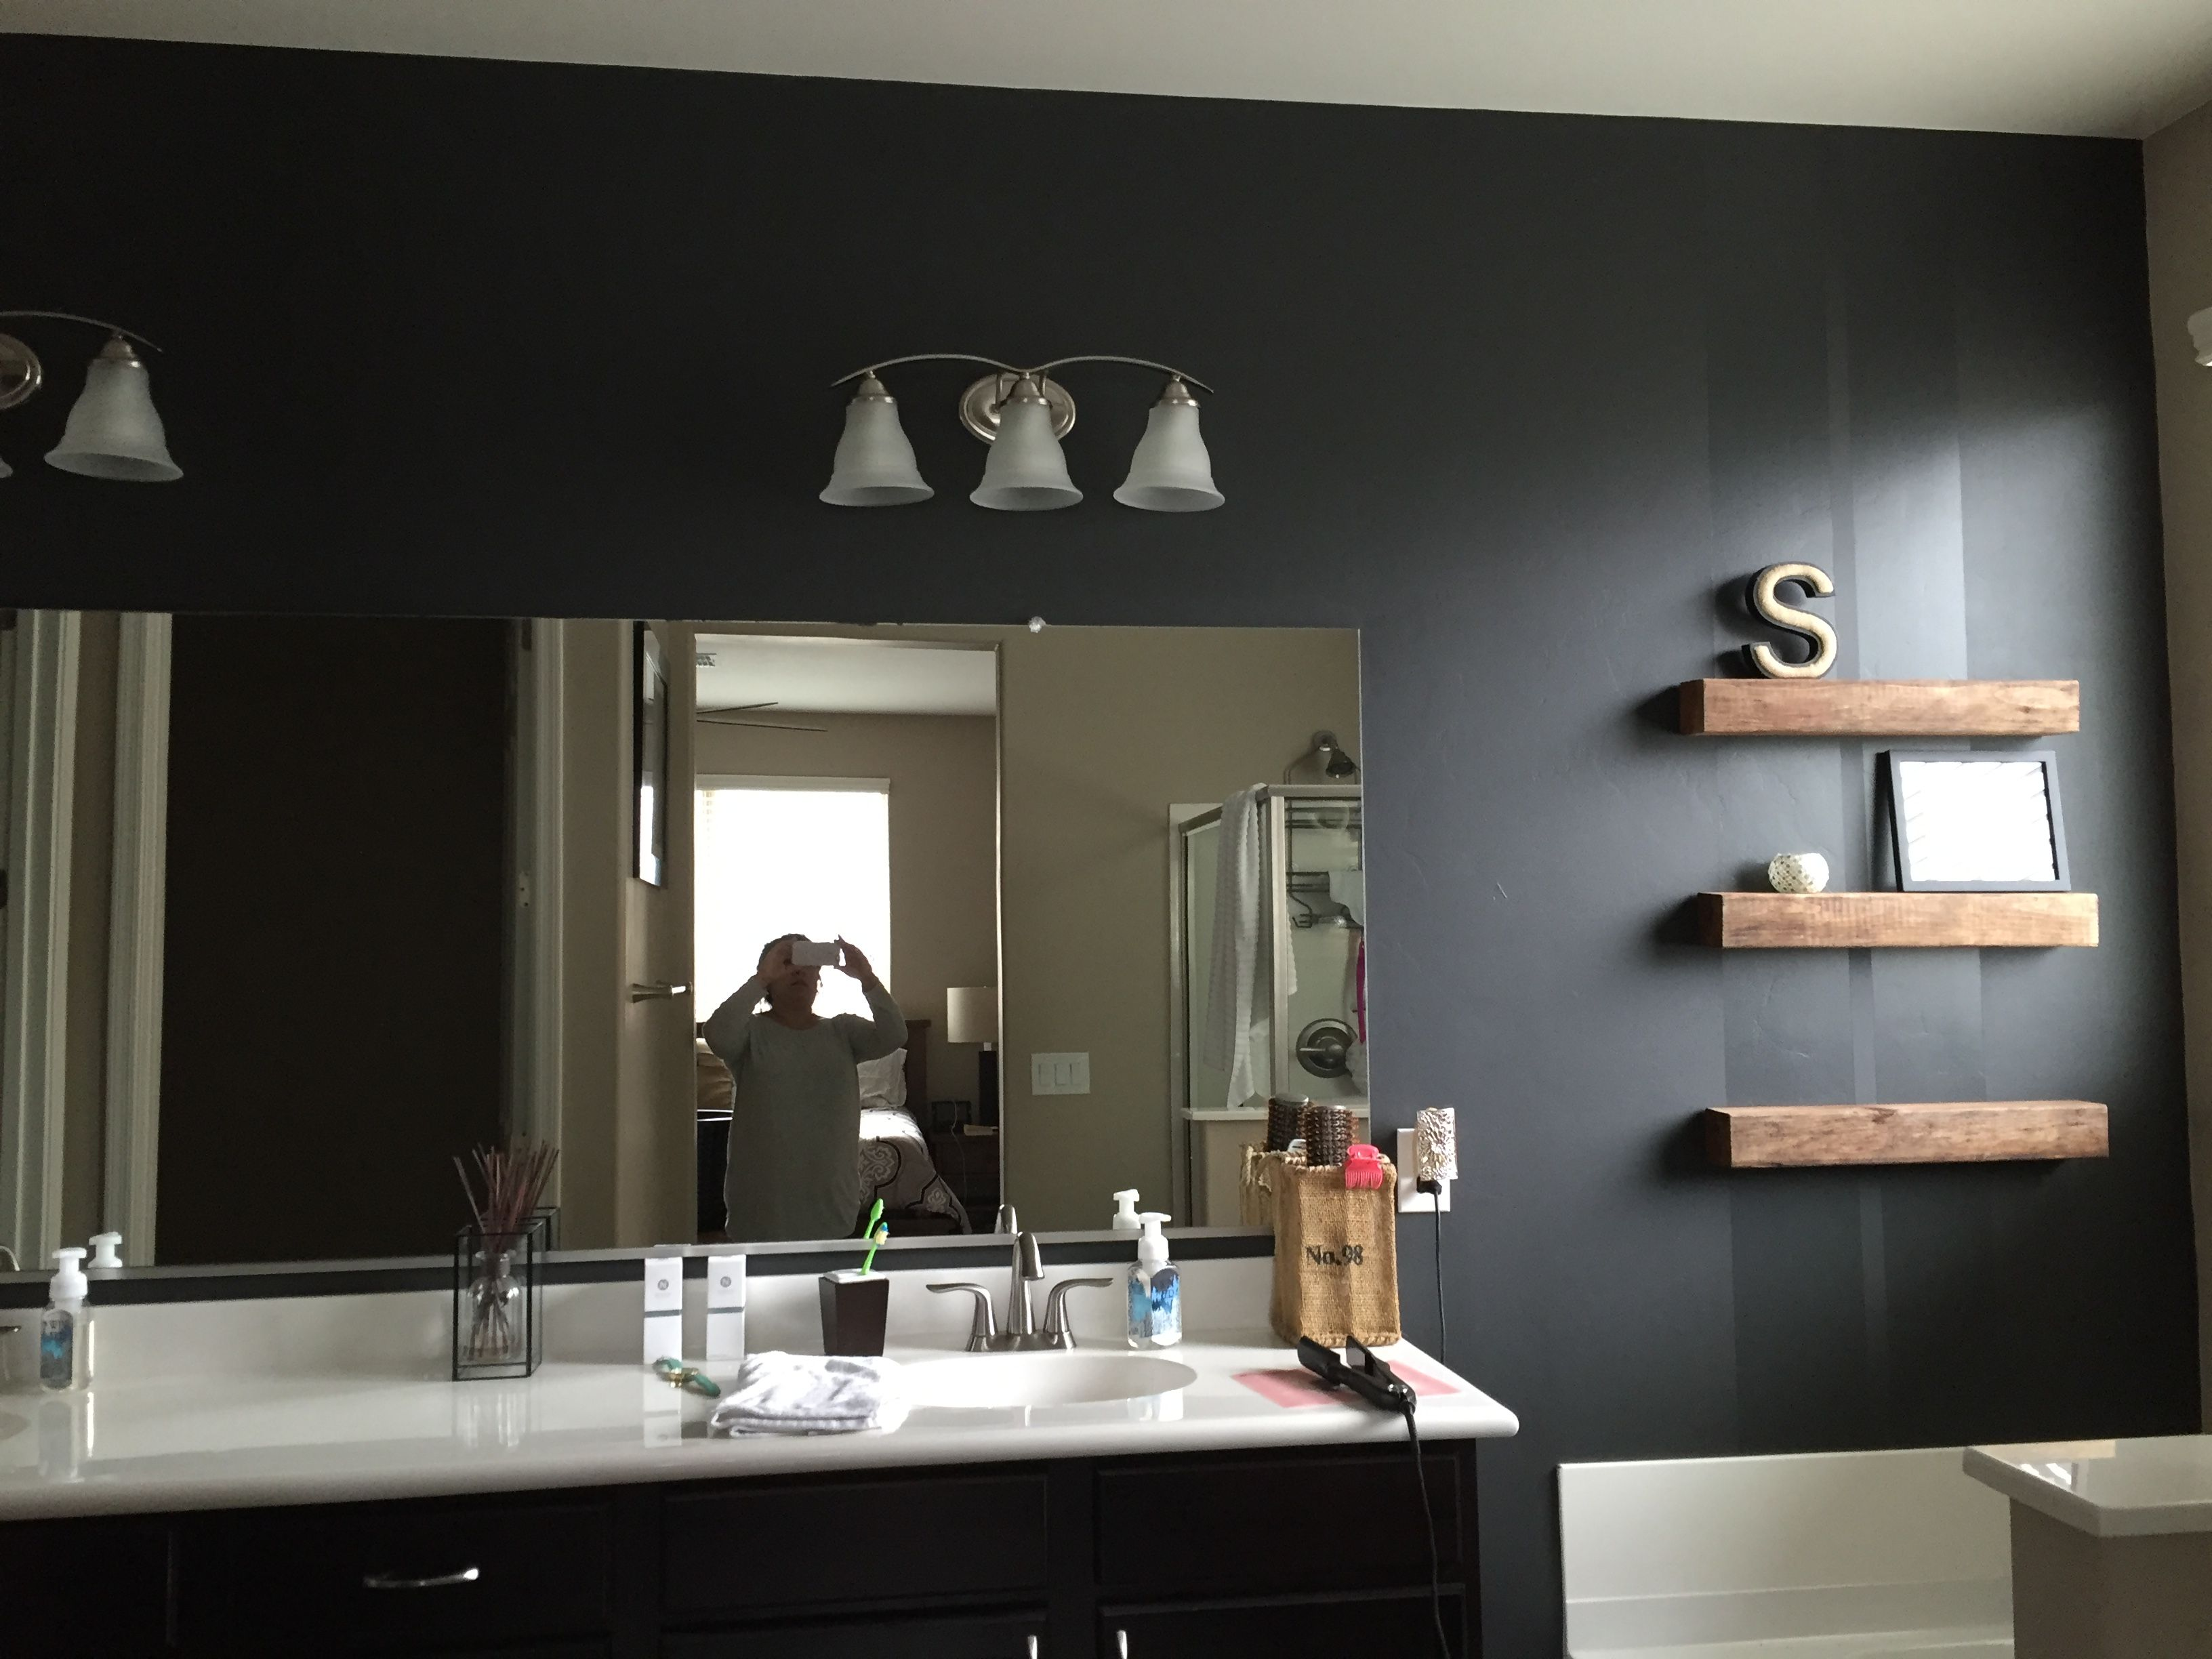 Iron Ore Sherwin Williams Matte With Satin Stripes Home Decor In 2019 Paint Colors For